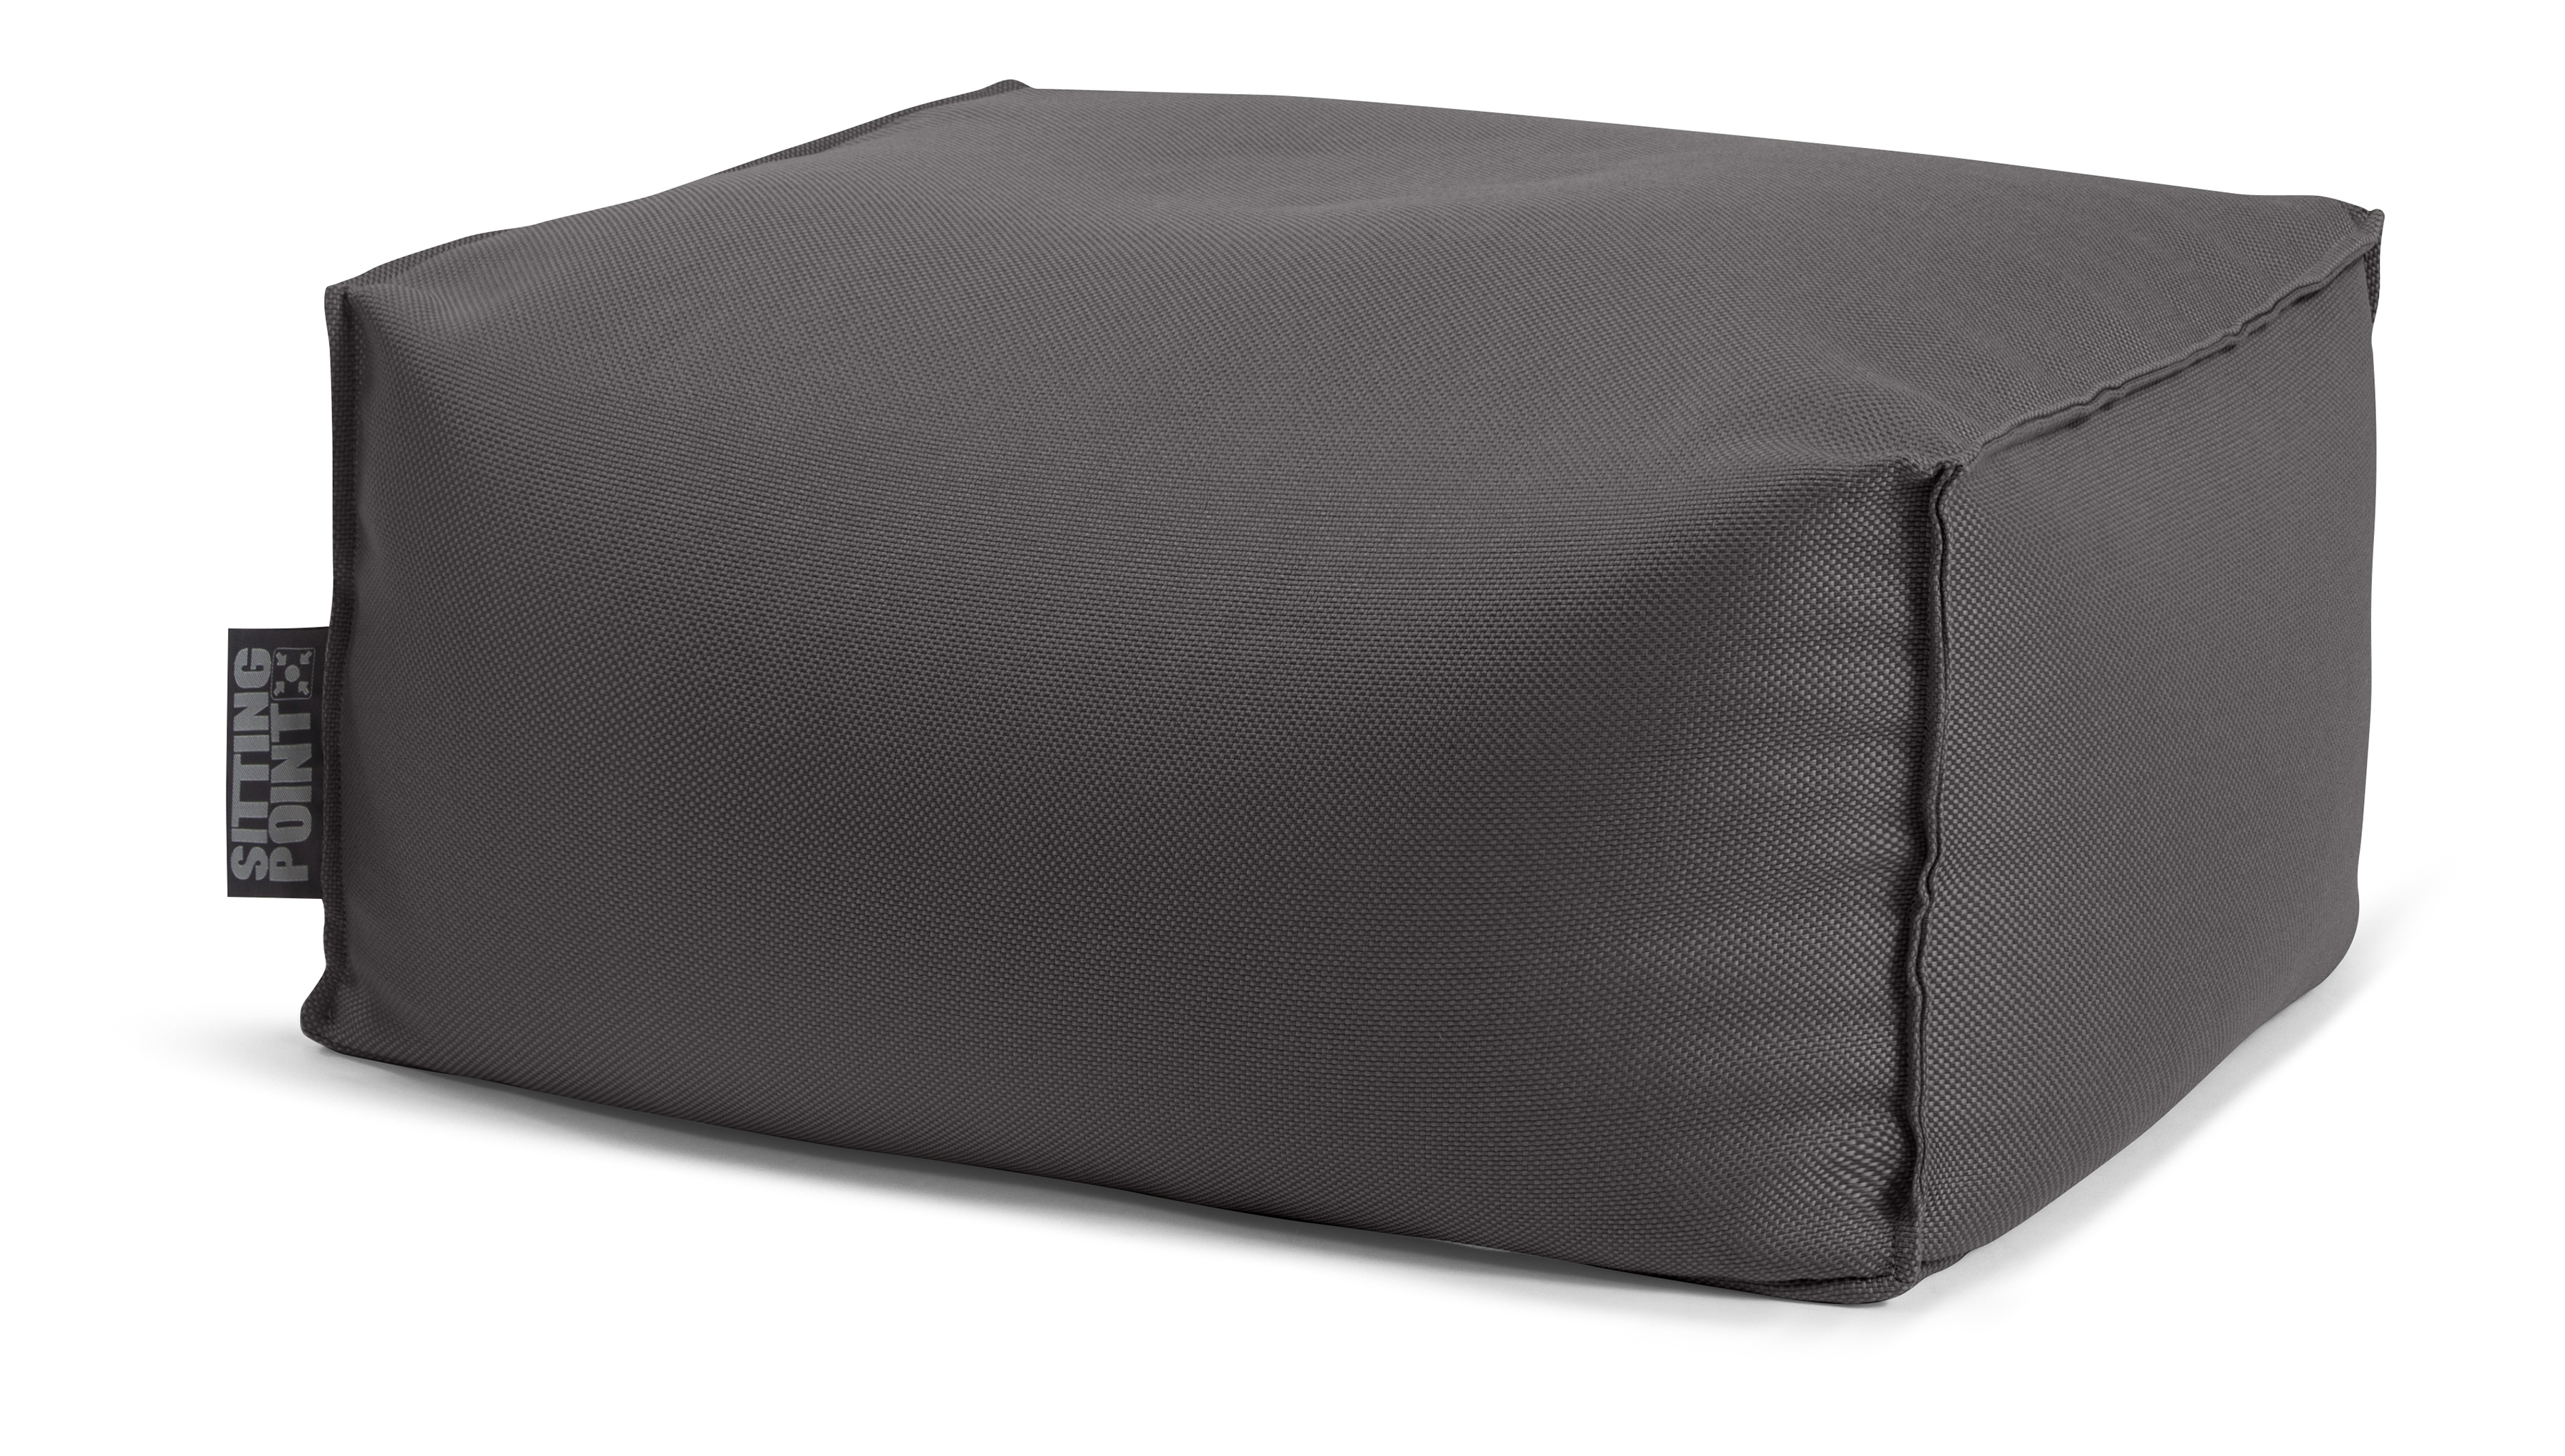 Pouf repose-pieds outdoor anthracite 55x65x35